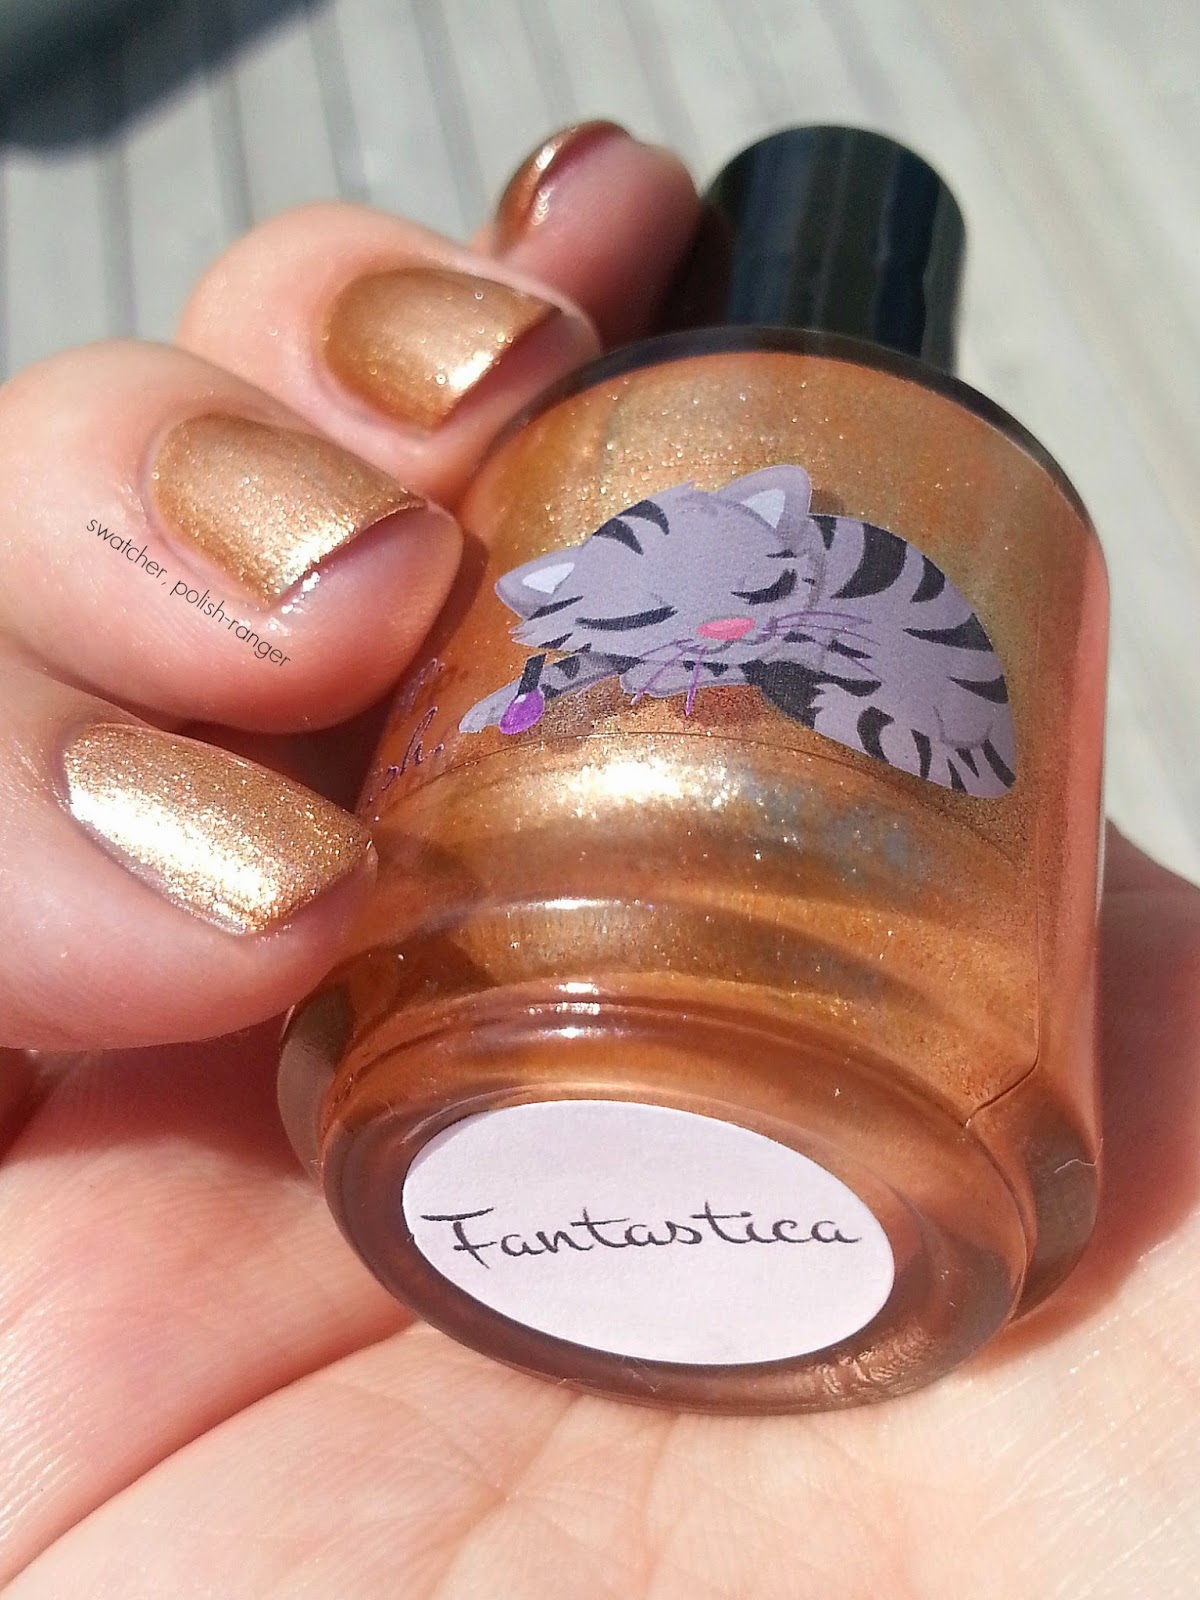 Eat. Sleep. Polish Fantastica swatch